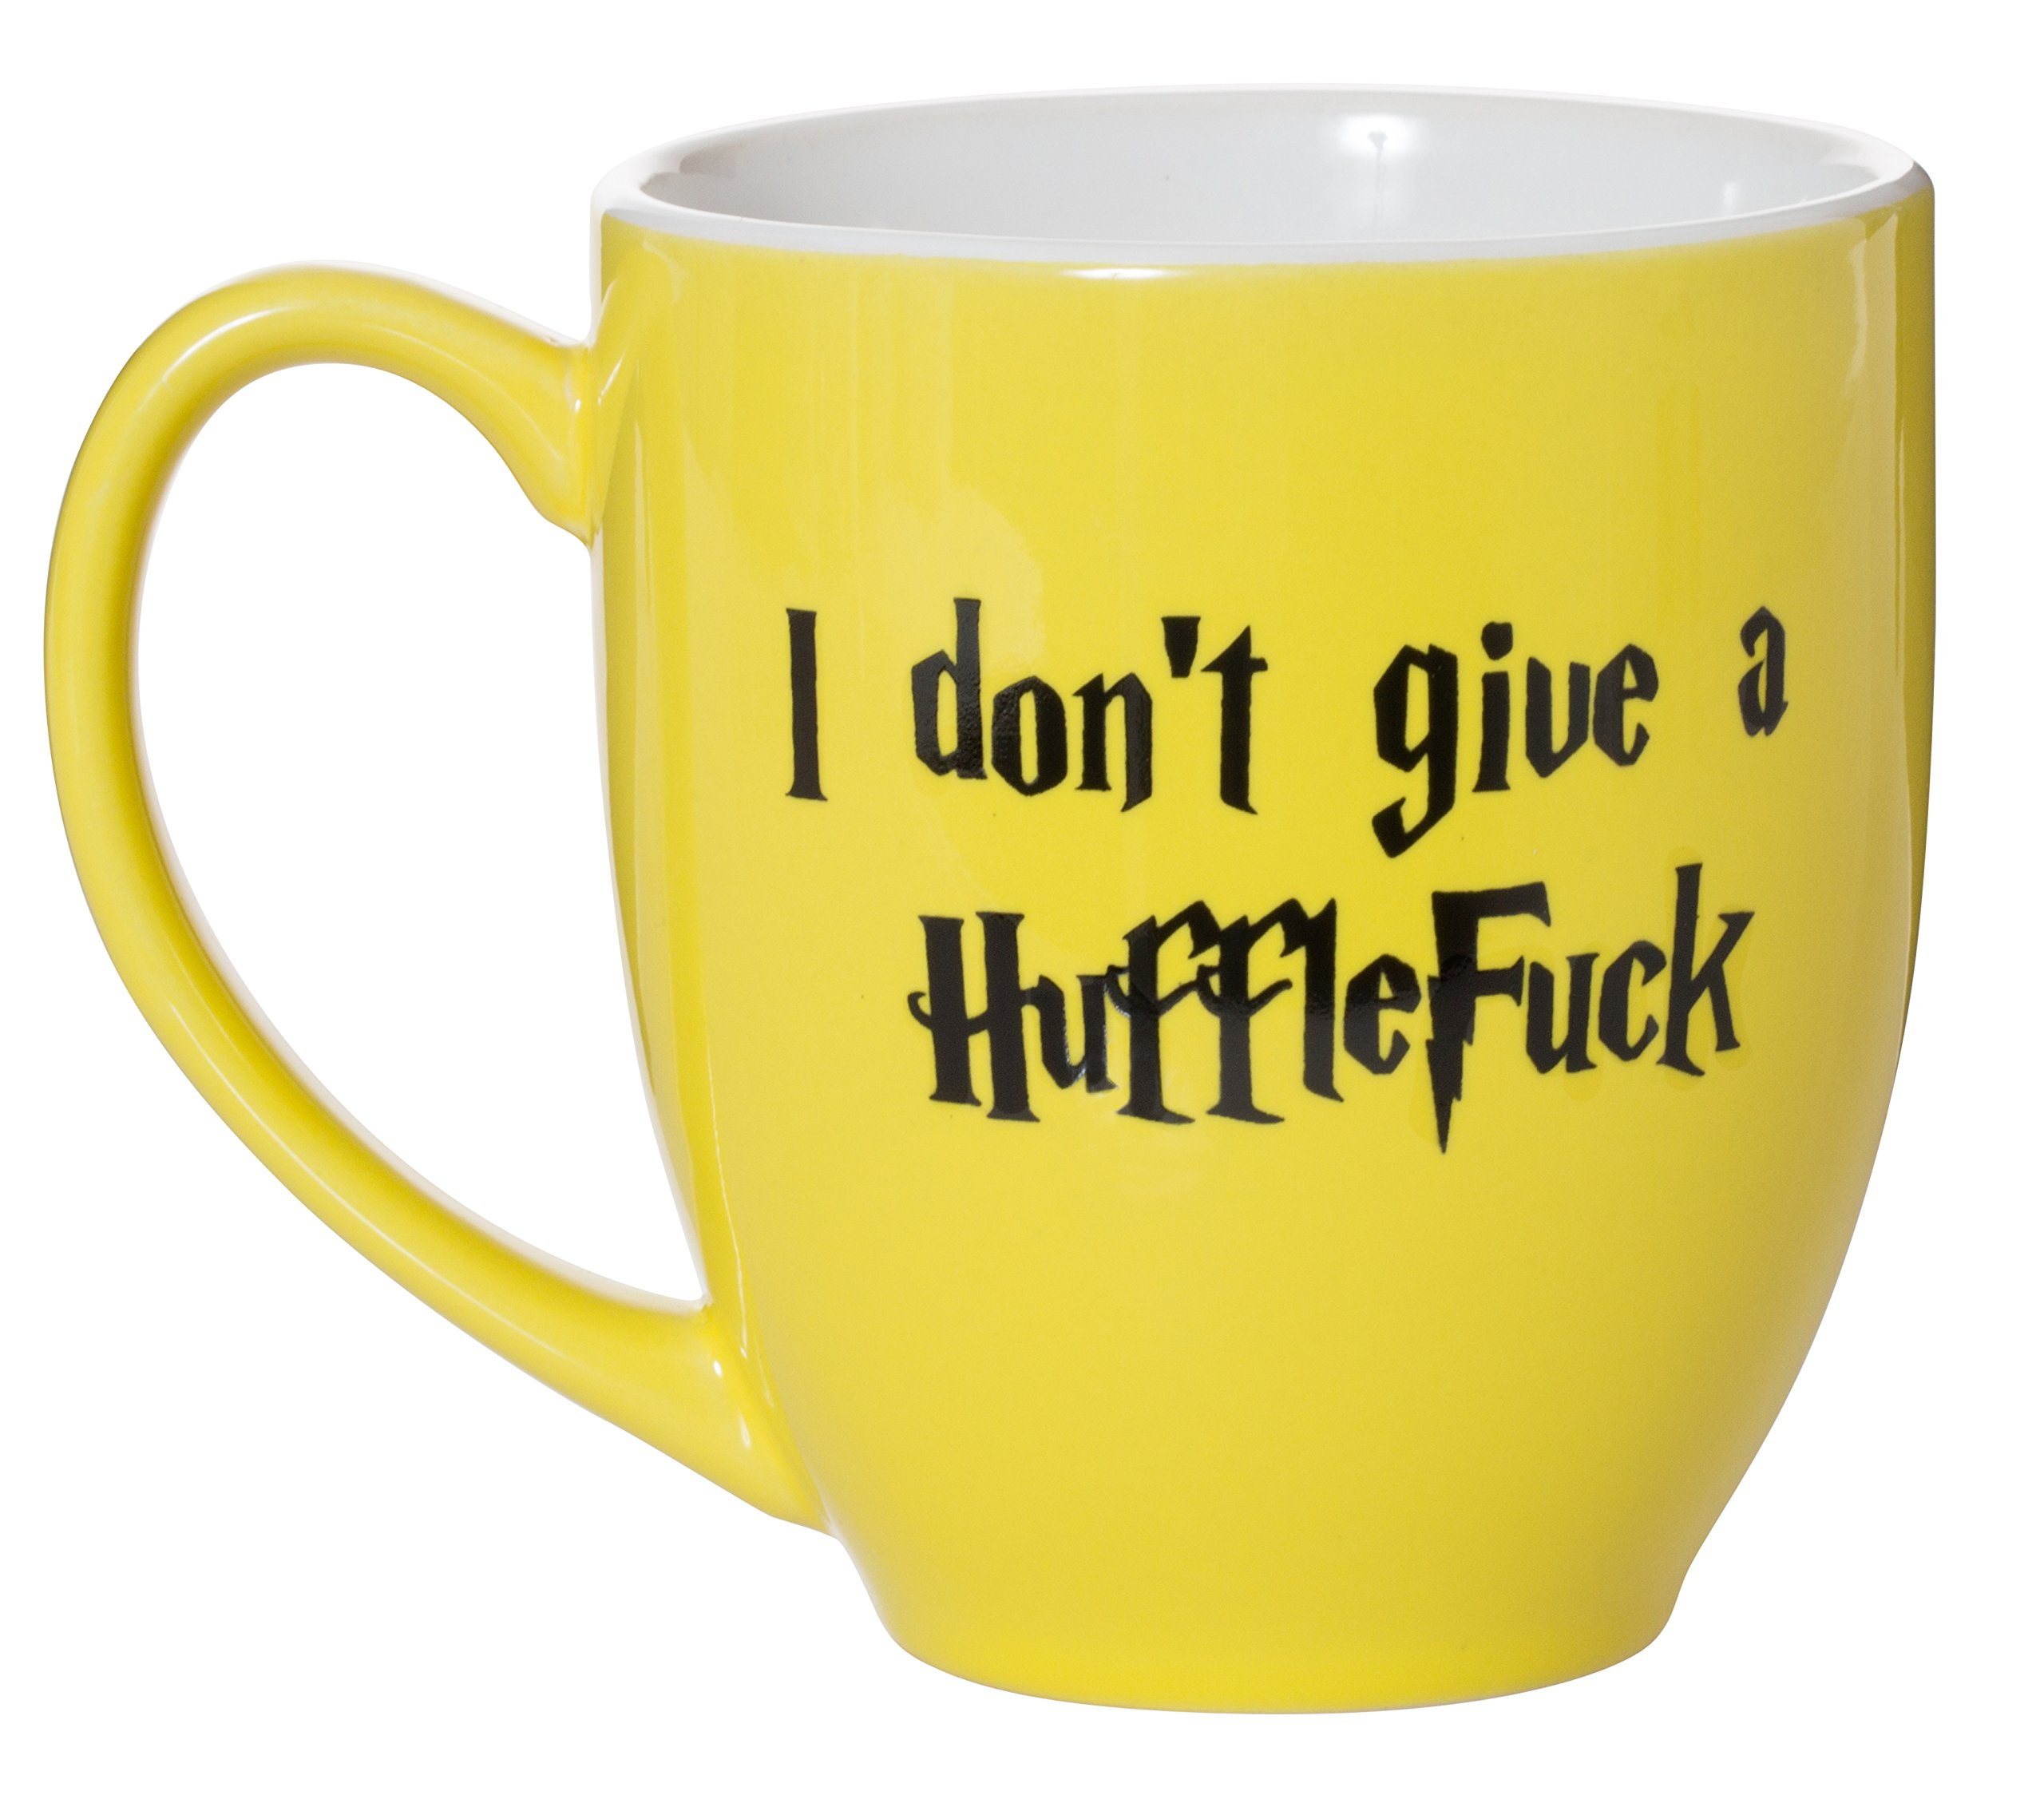 I Don't Give A HuffleFuck - 15oz Bistro Deluxe Double-Sided Coffee Tea Mug (HuffleFuck) by Artisan Owl (Image #3)